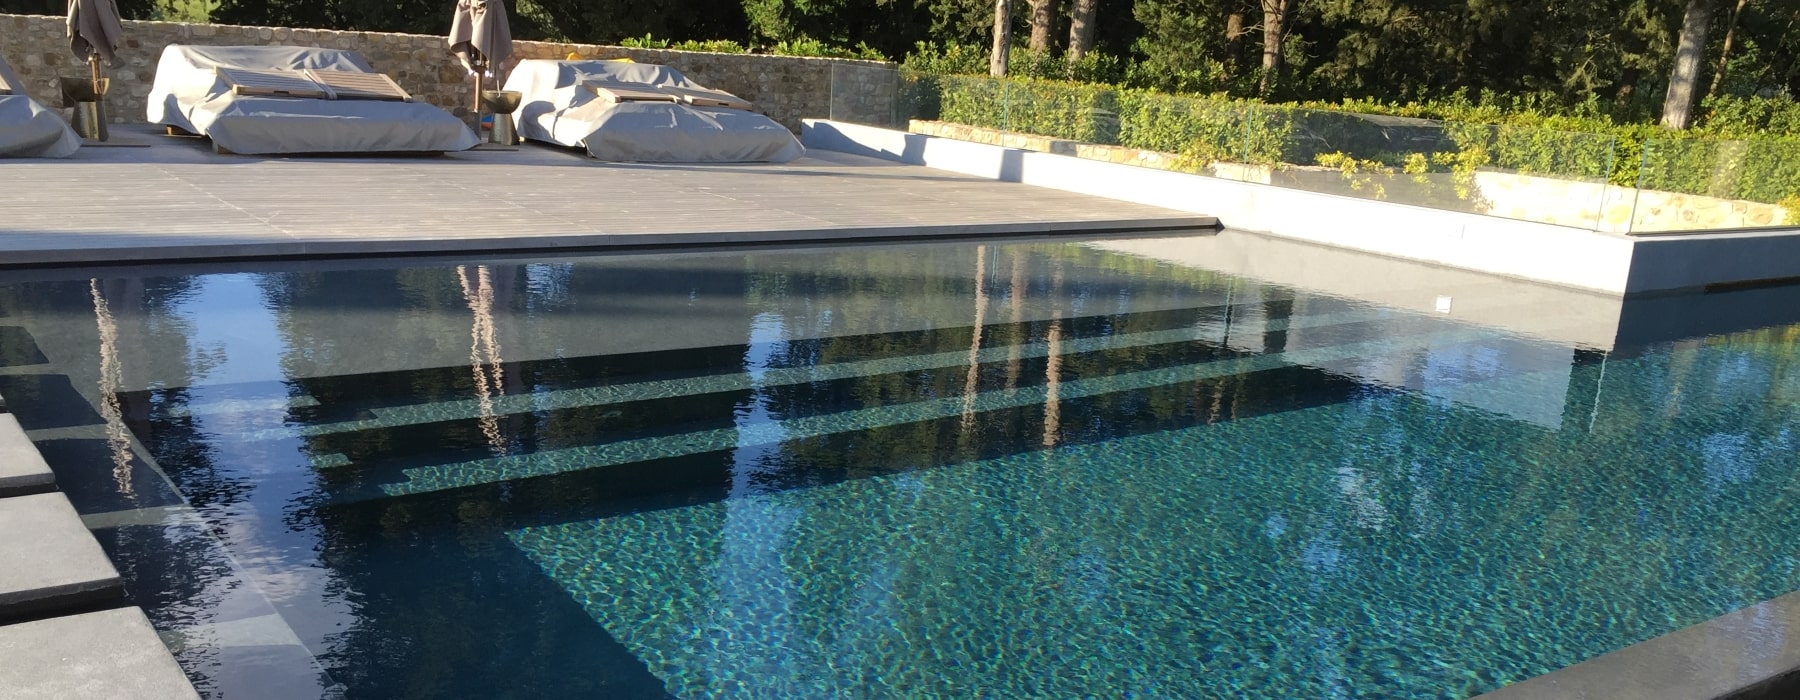 Piscina Design Design Pools Garden Pool Realizzazione Piscine In Toscana